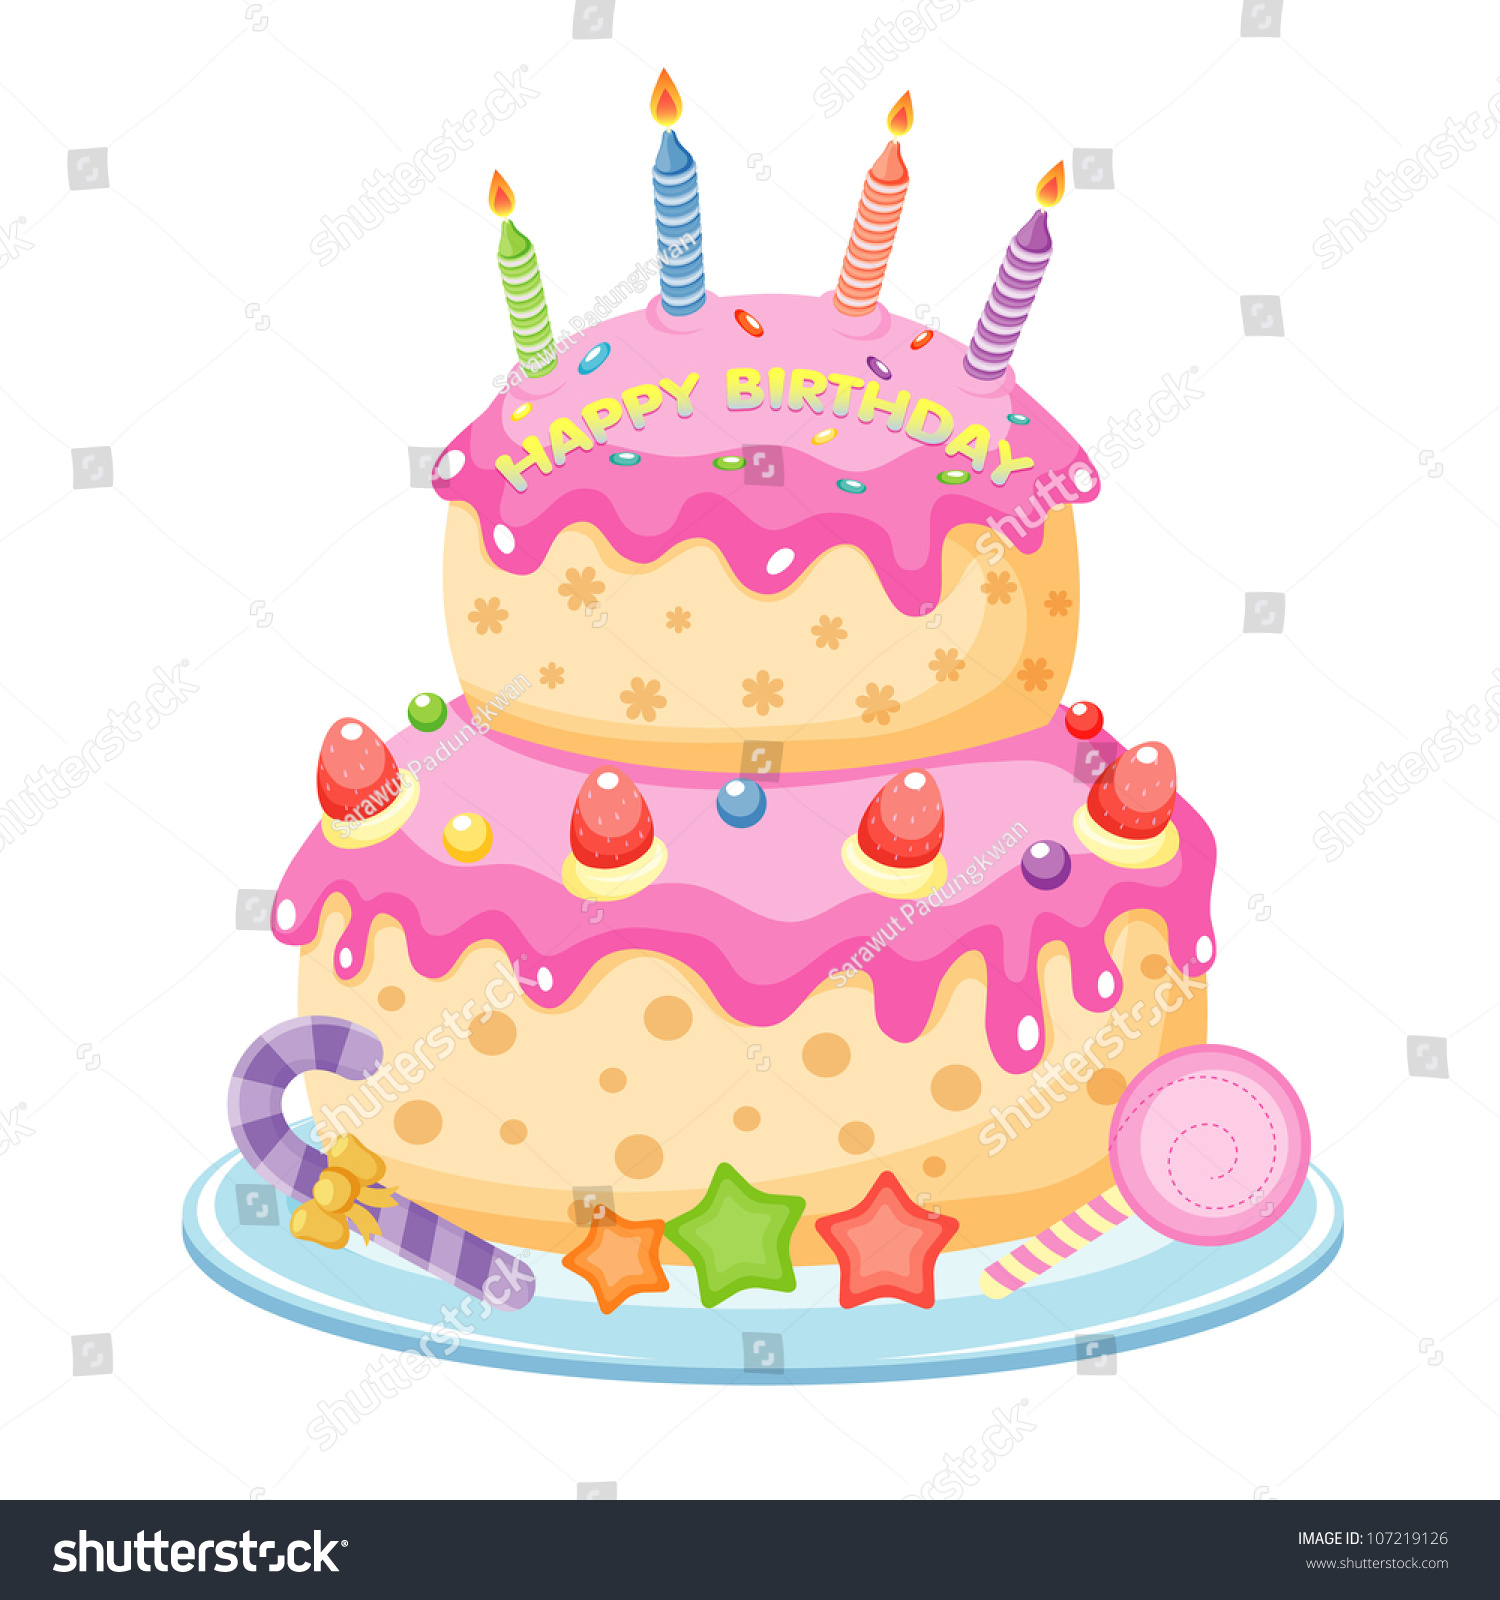 Birthday Cake Stock Vector HD Royalty Free 107219126 Shutterstock